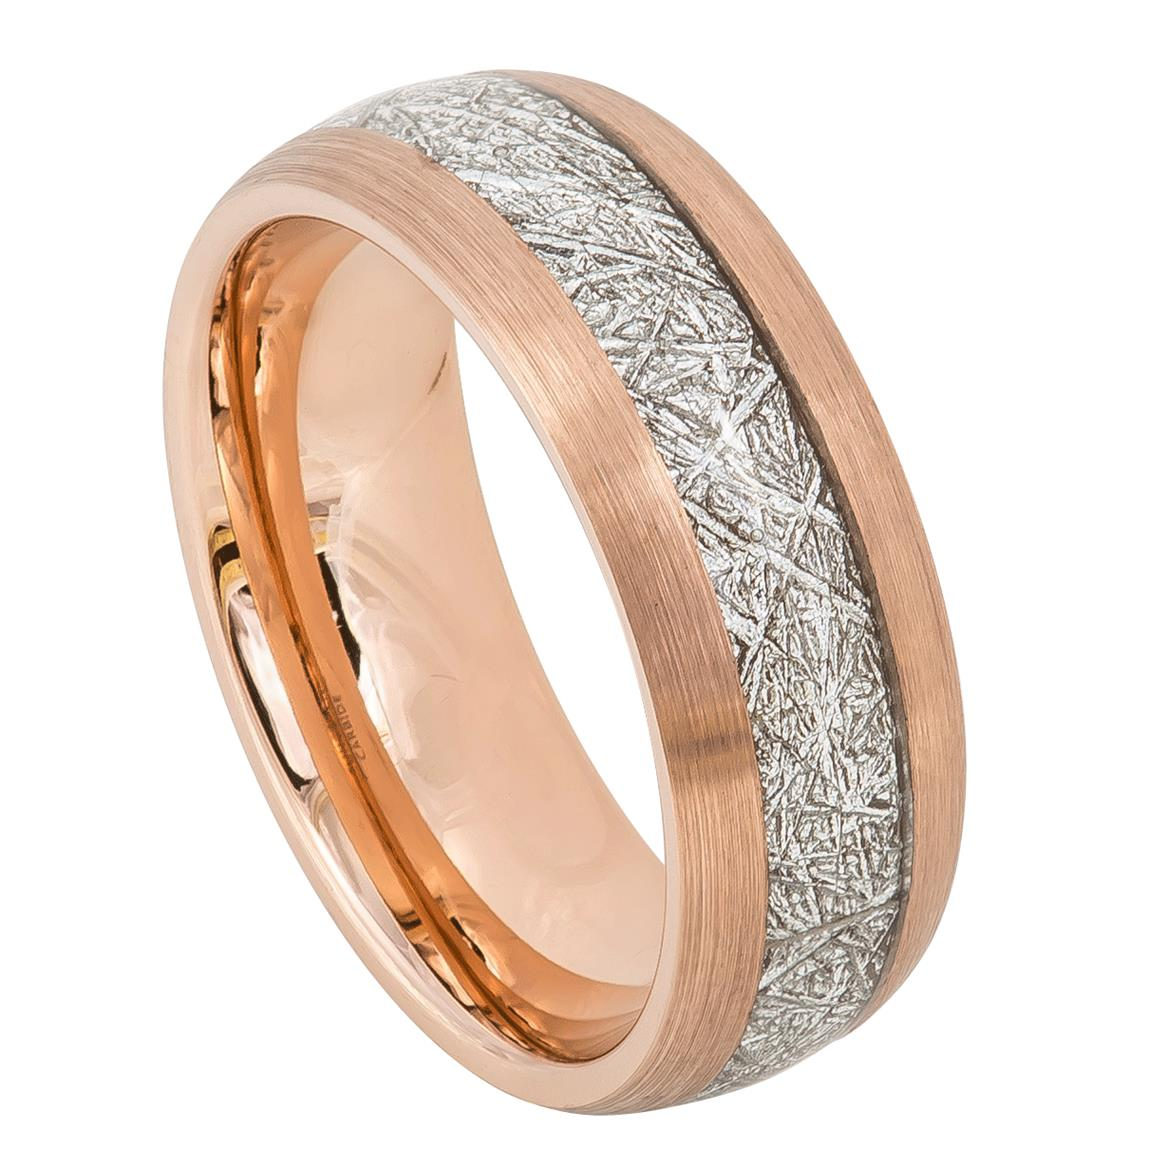 Meteorite Ring, ip rose gold